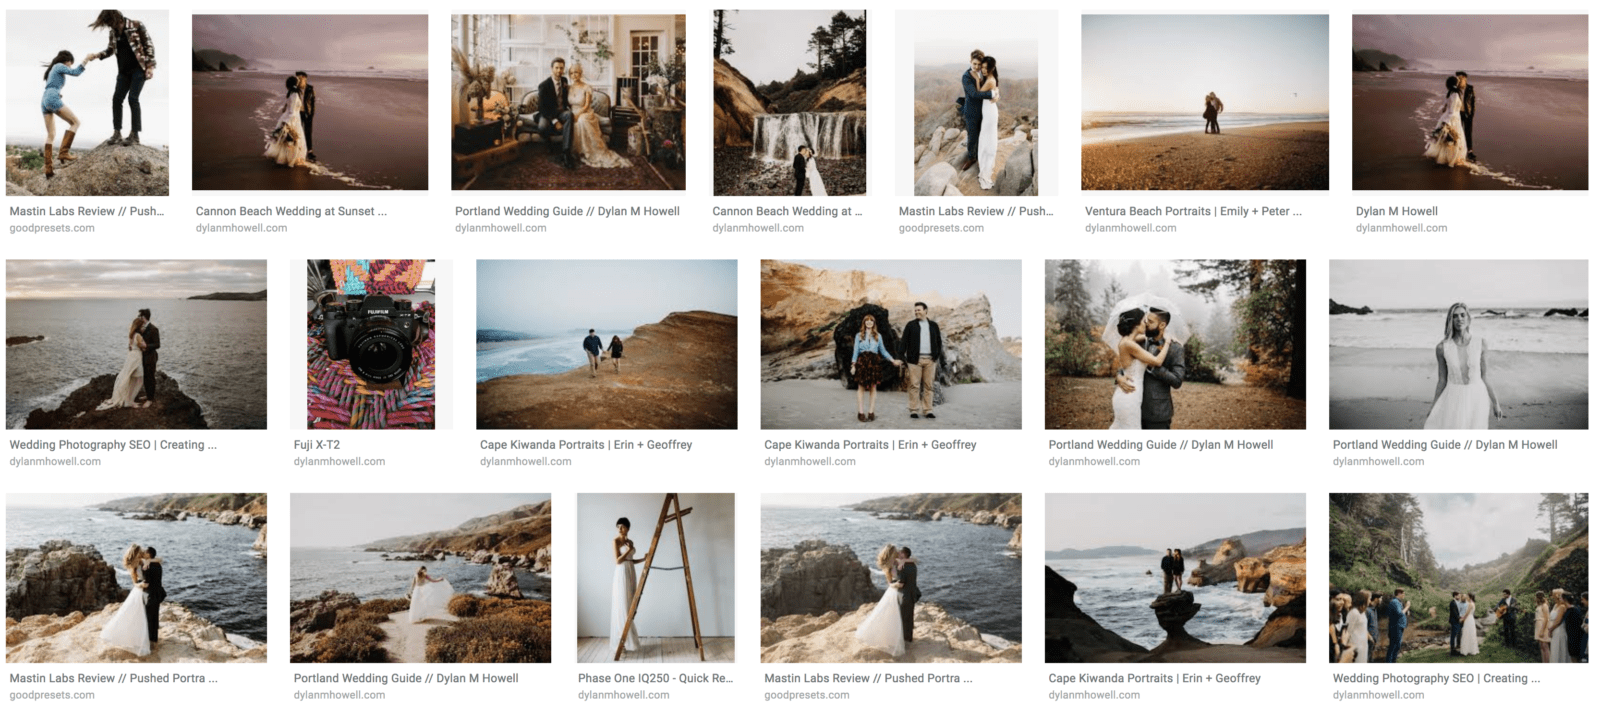 google image search update seo tips for photographers